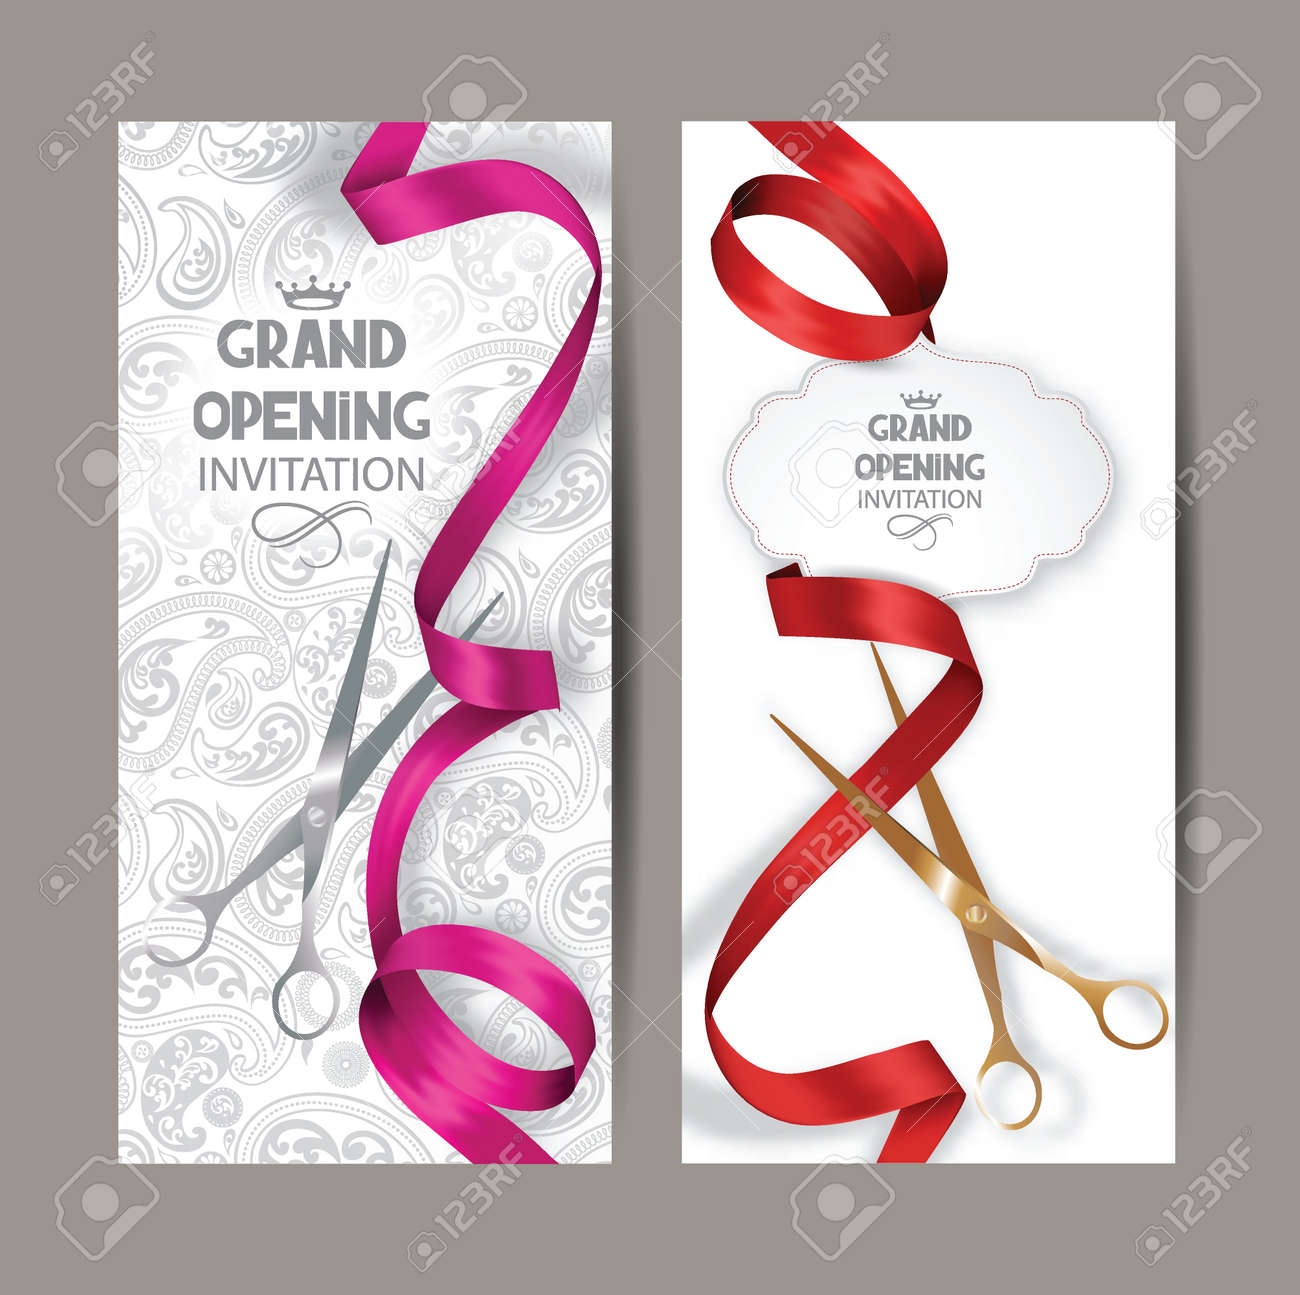 Beautiful grand opening invitation cards with red and pink silk ribbons and floral background - 55364998